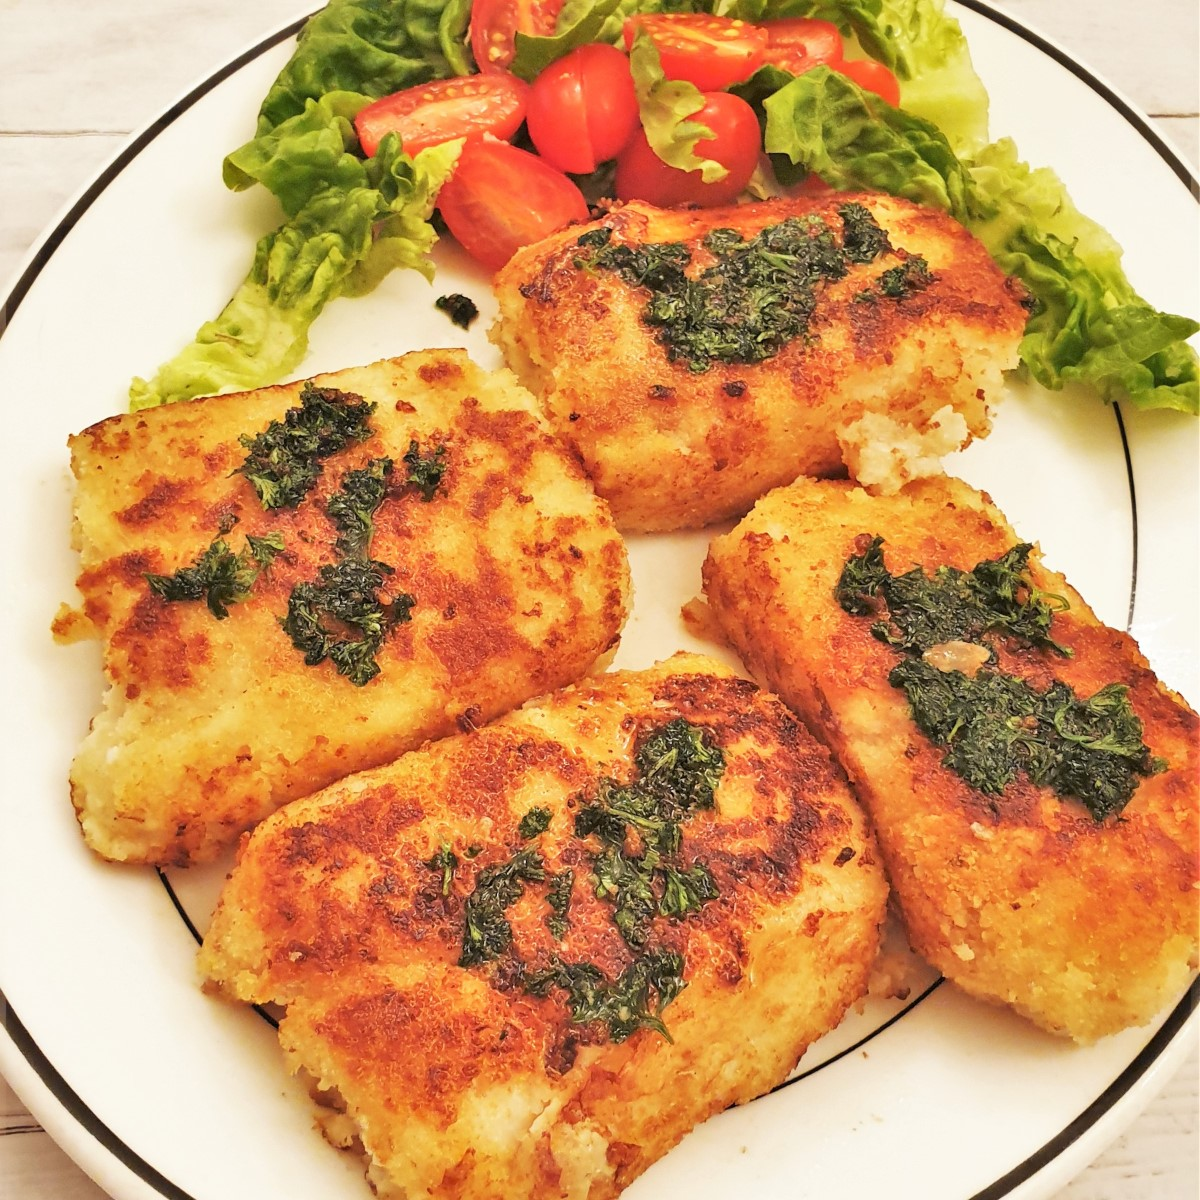 4 fillete of crispy fried fish on a plat, covered with parsley sauce.